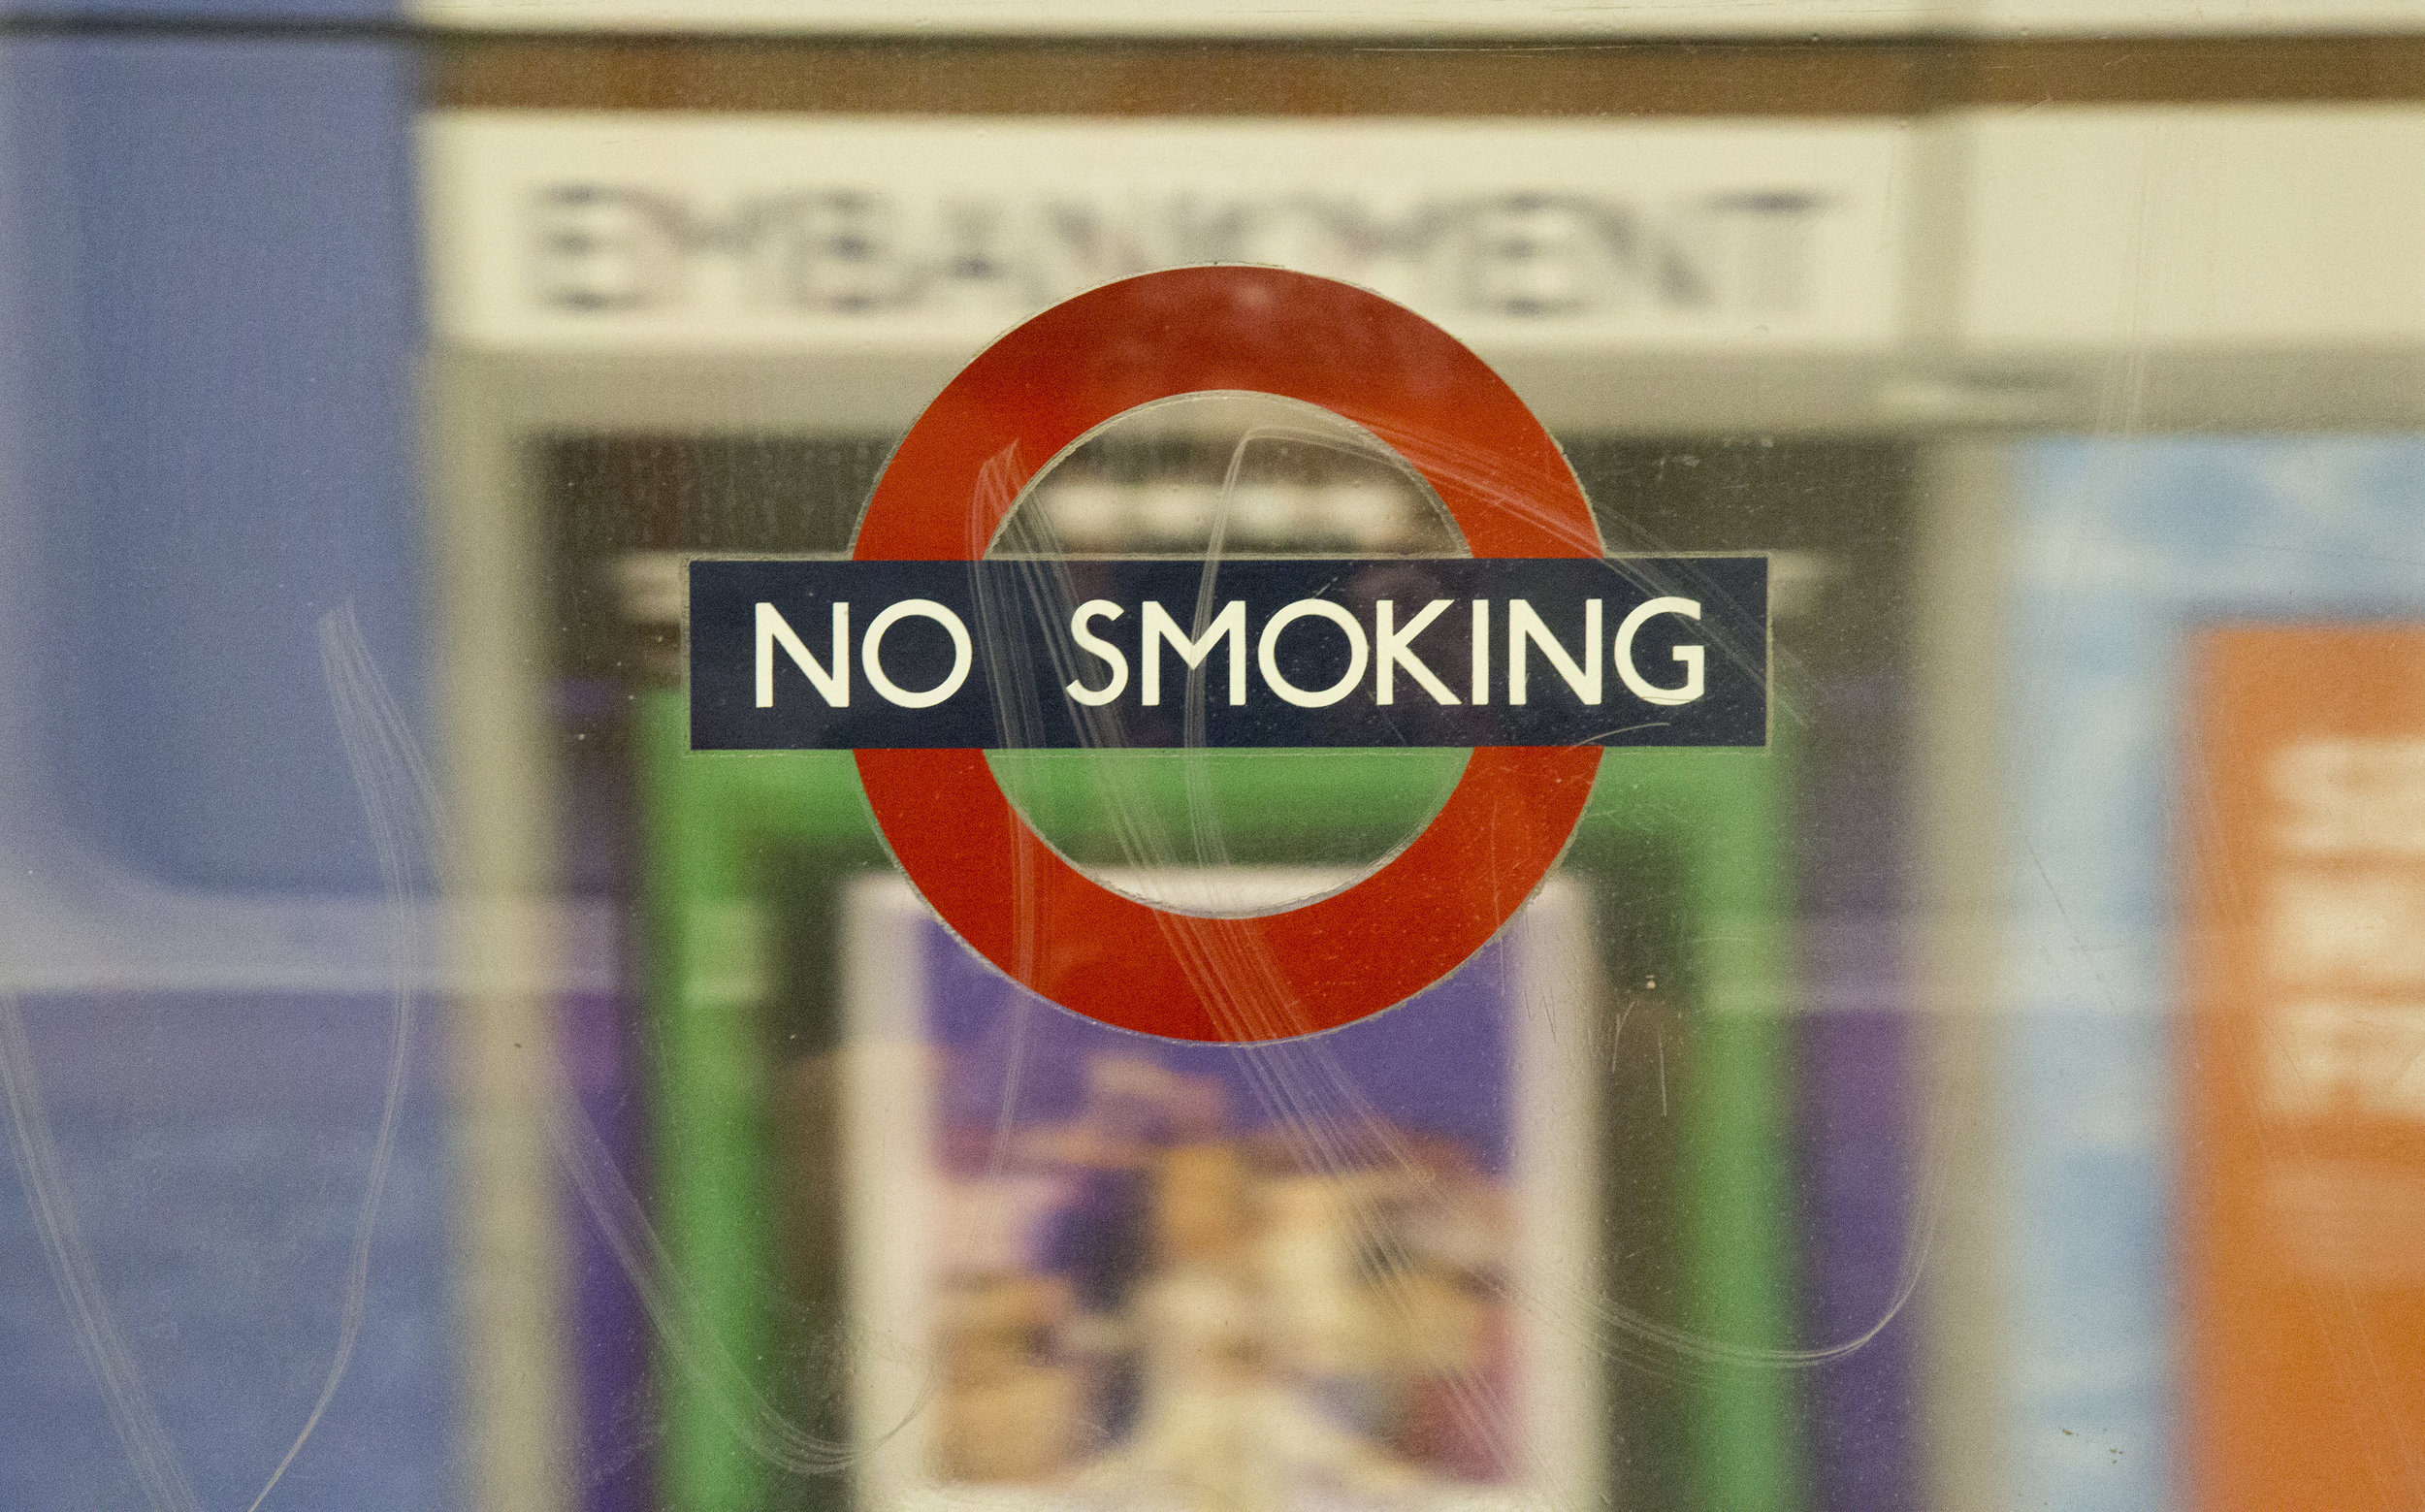 tobacco free no smoking fire suppression home insurance mortgage lender usda fha va loans fixed rate loans small business imagine home lending